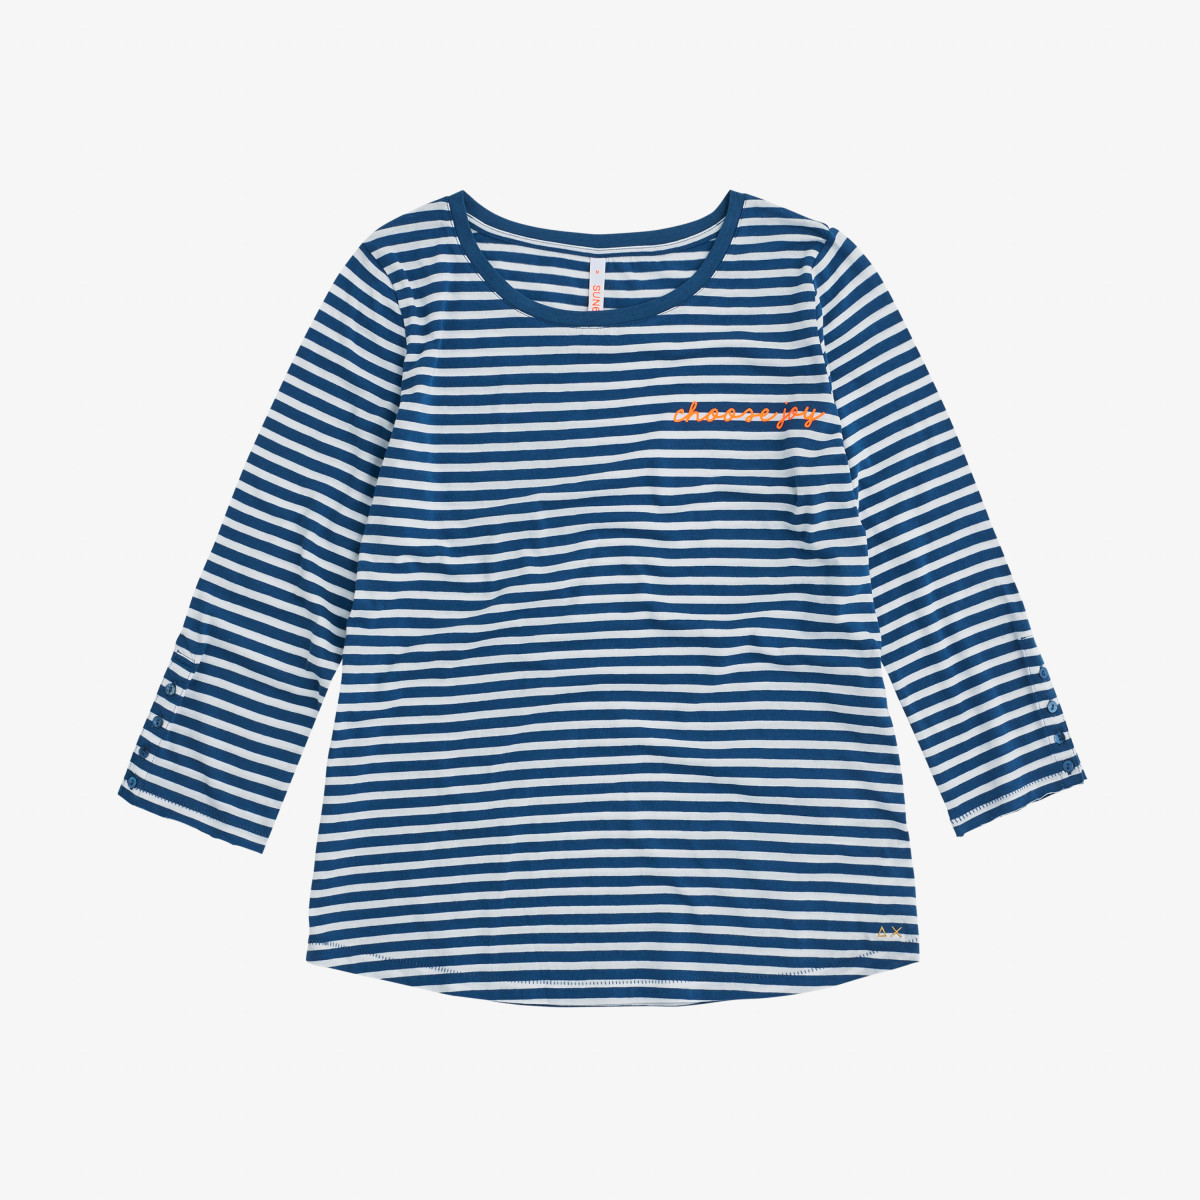 ROUND NECK T-SHIRT STRIPES 3/4 SLV AVIO/BIANCO